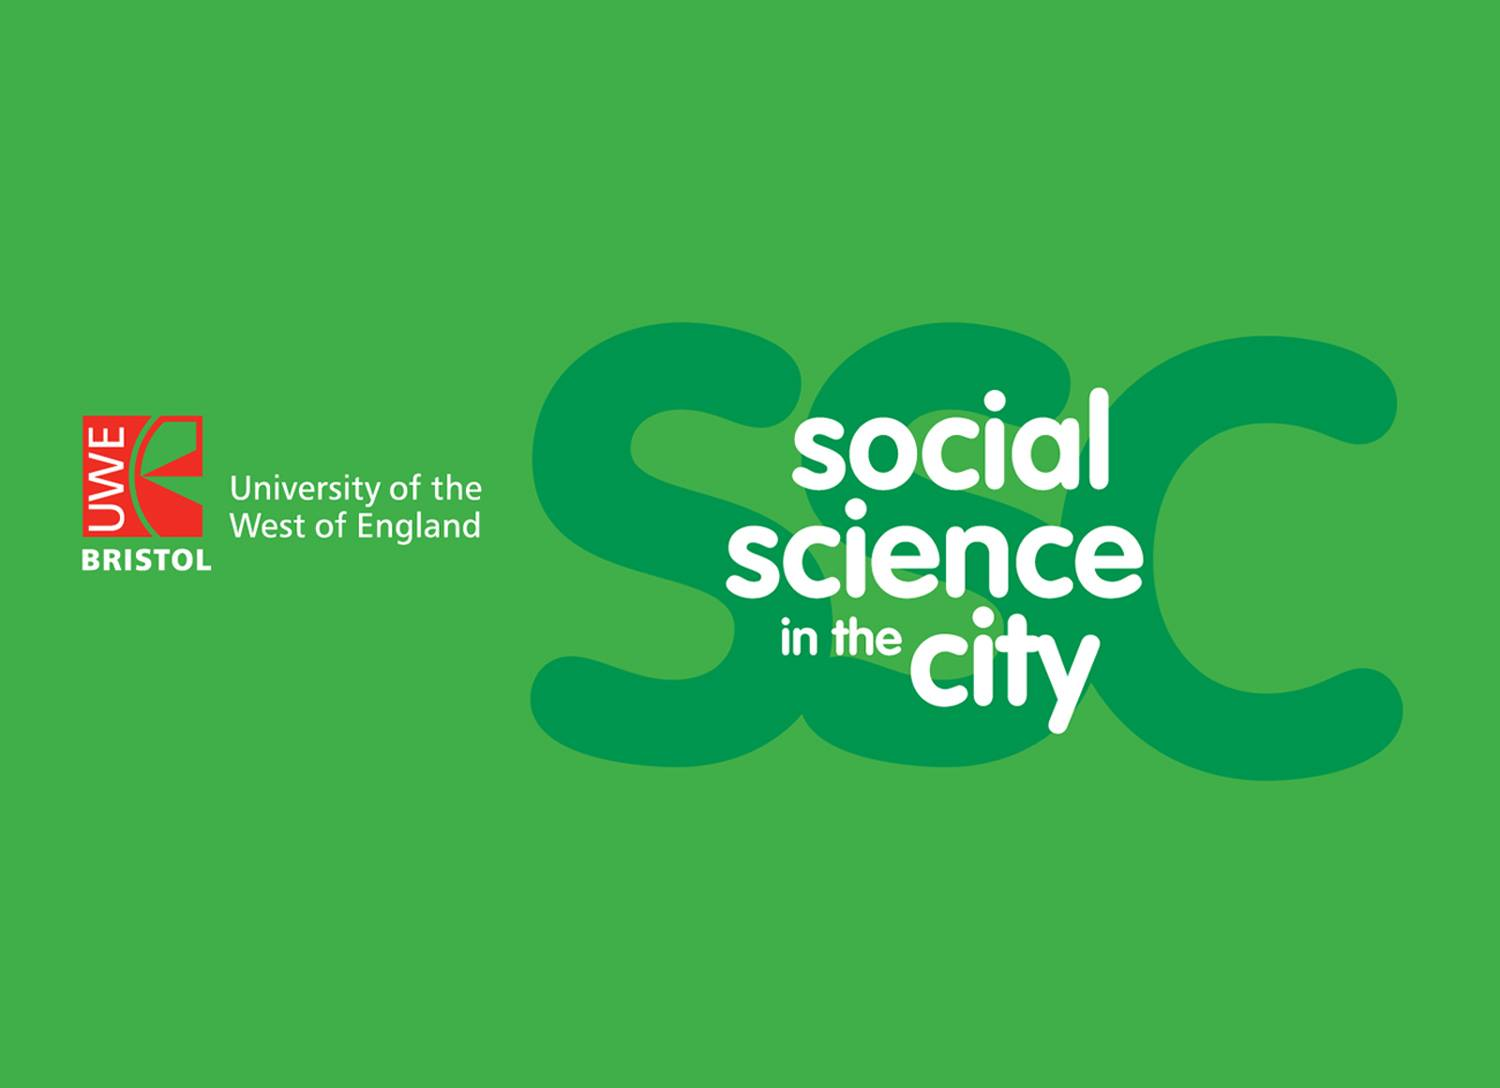 Europe After The Economic Crisis - Social Science in the City